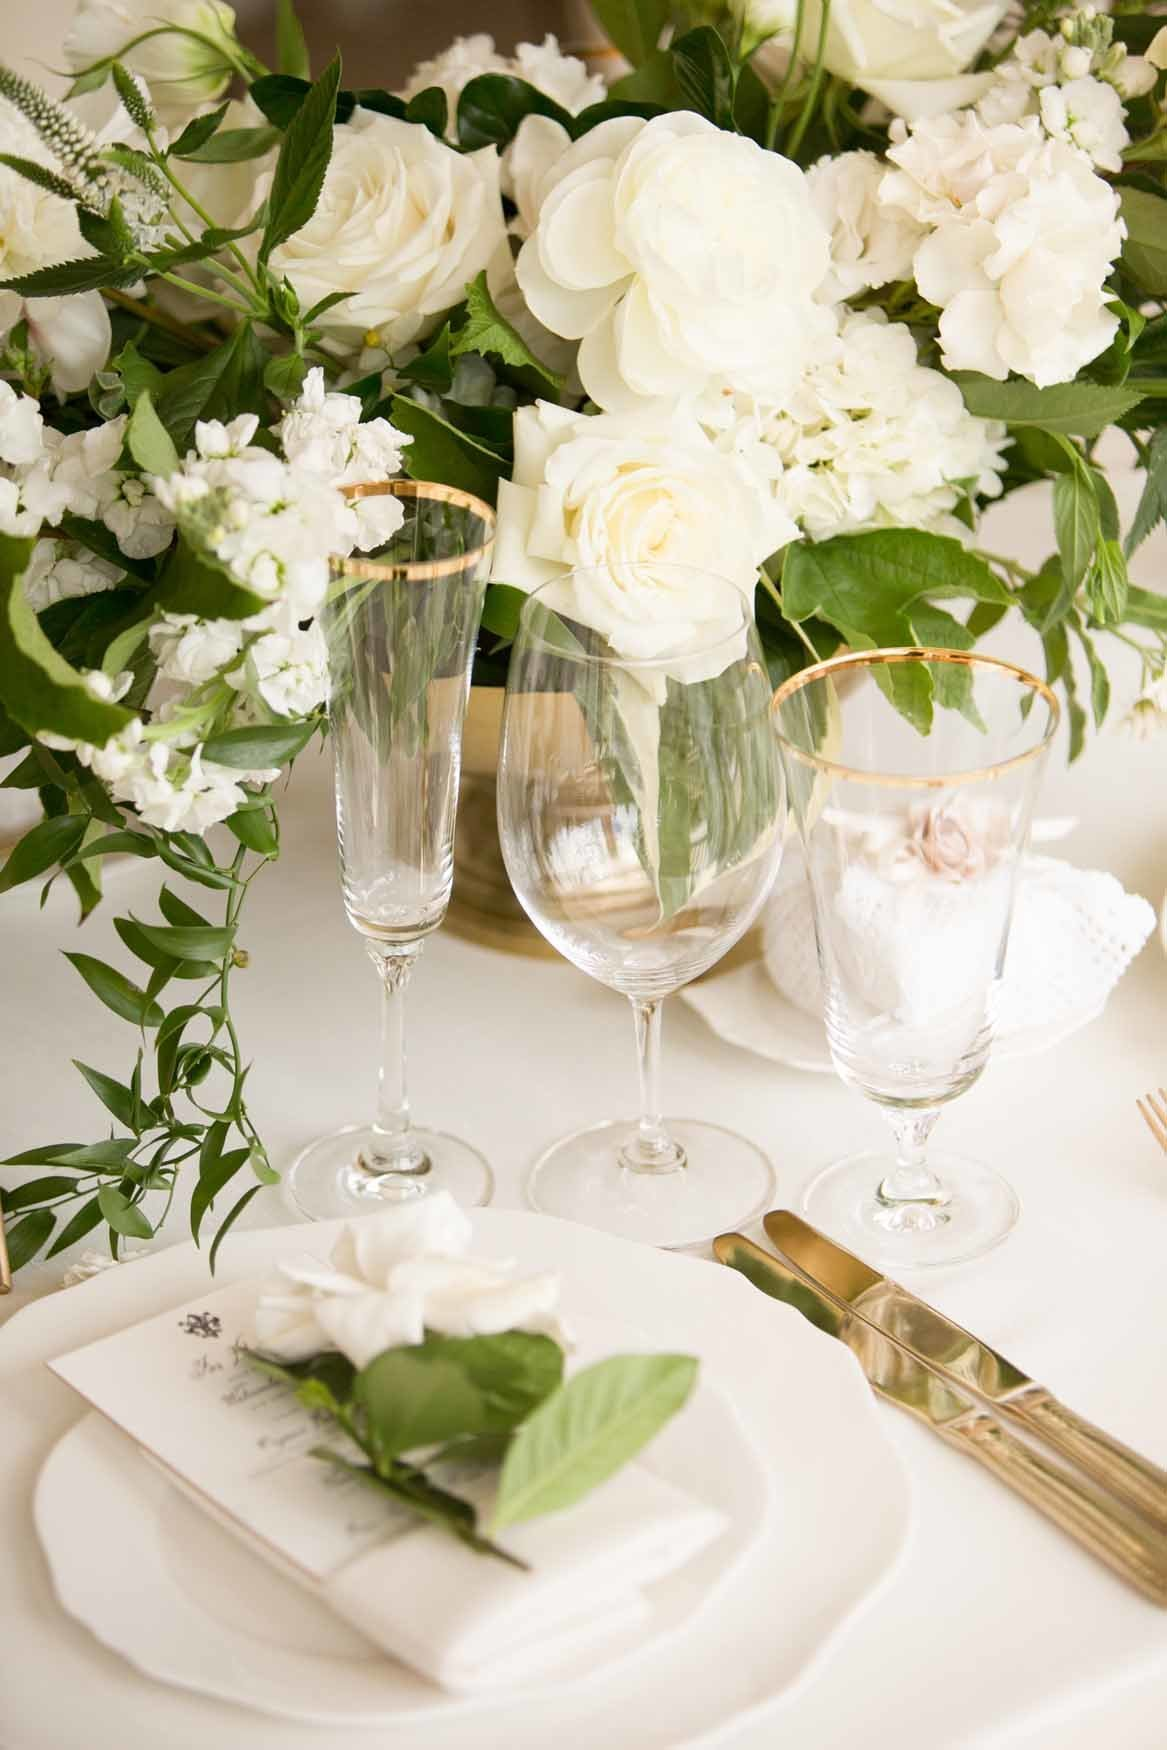 Luxurious white and gold table setting with gardenia napkin flower